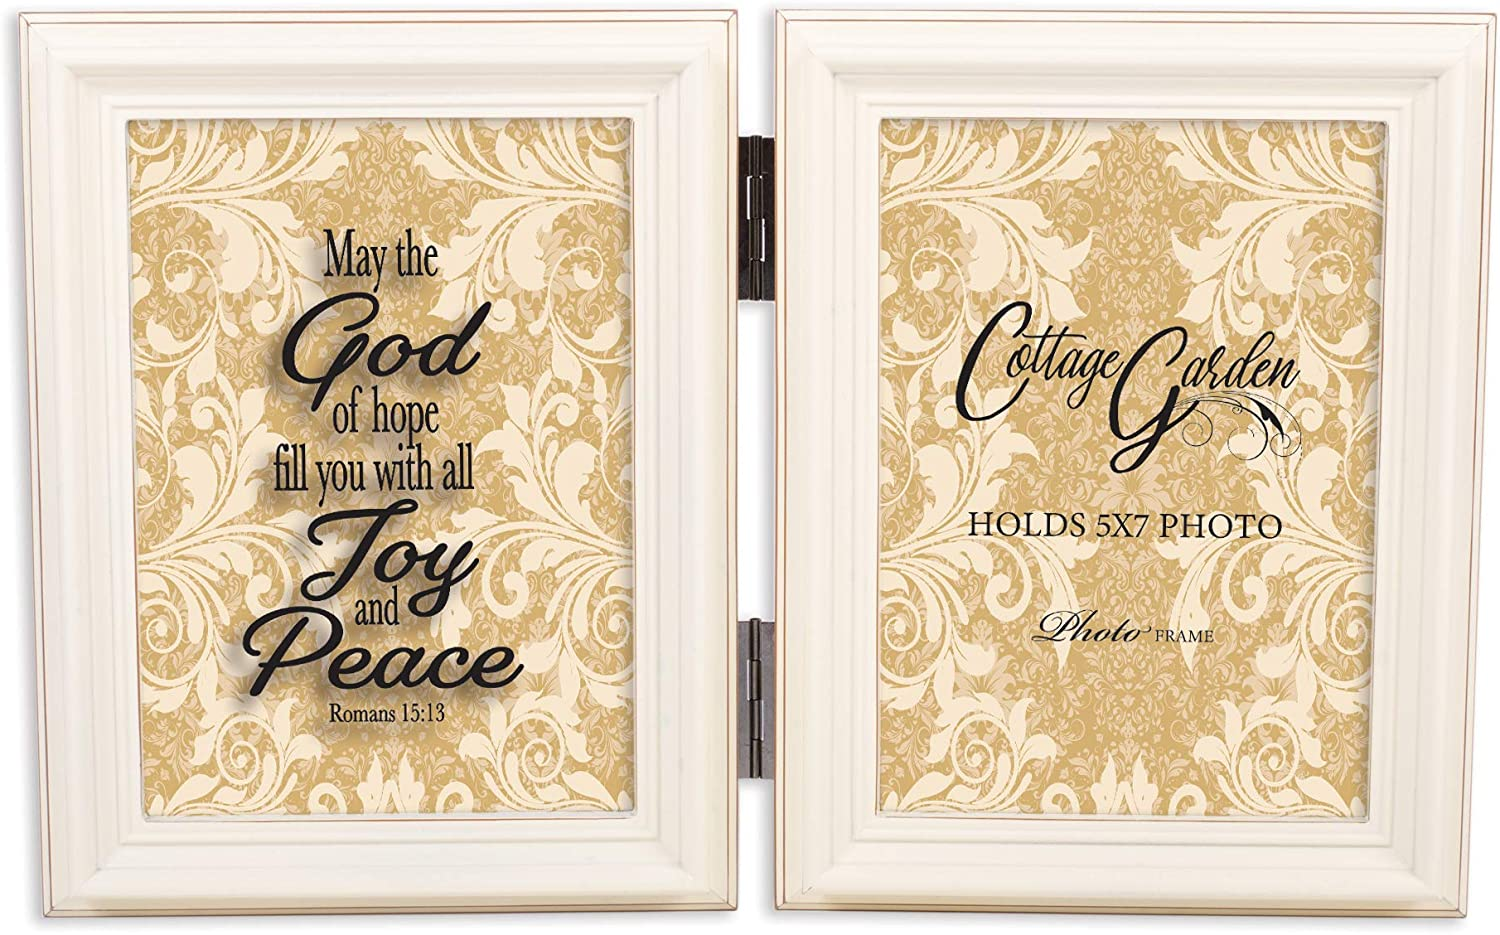 Cottage Garden Fill Joy Peace Ivory Pearl 5 x 7 Wood Hinged Double Tabletop Photo Frame